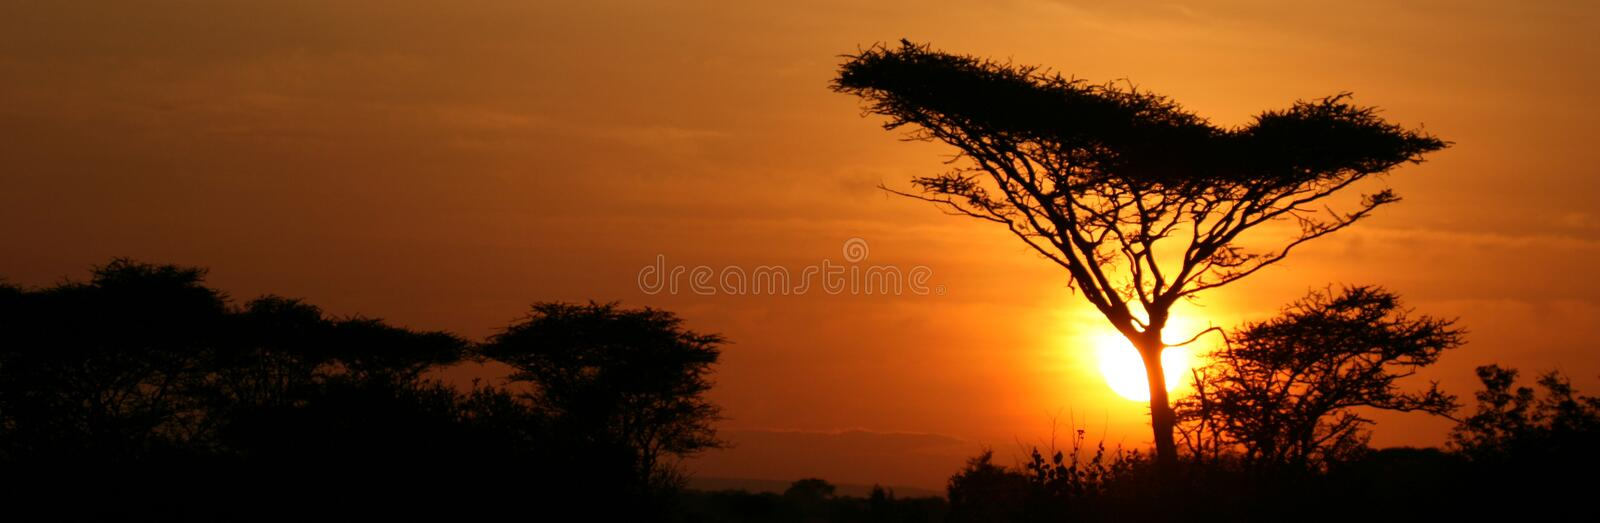 Acacia Tree Sunset, Serengeti, Africa stock image